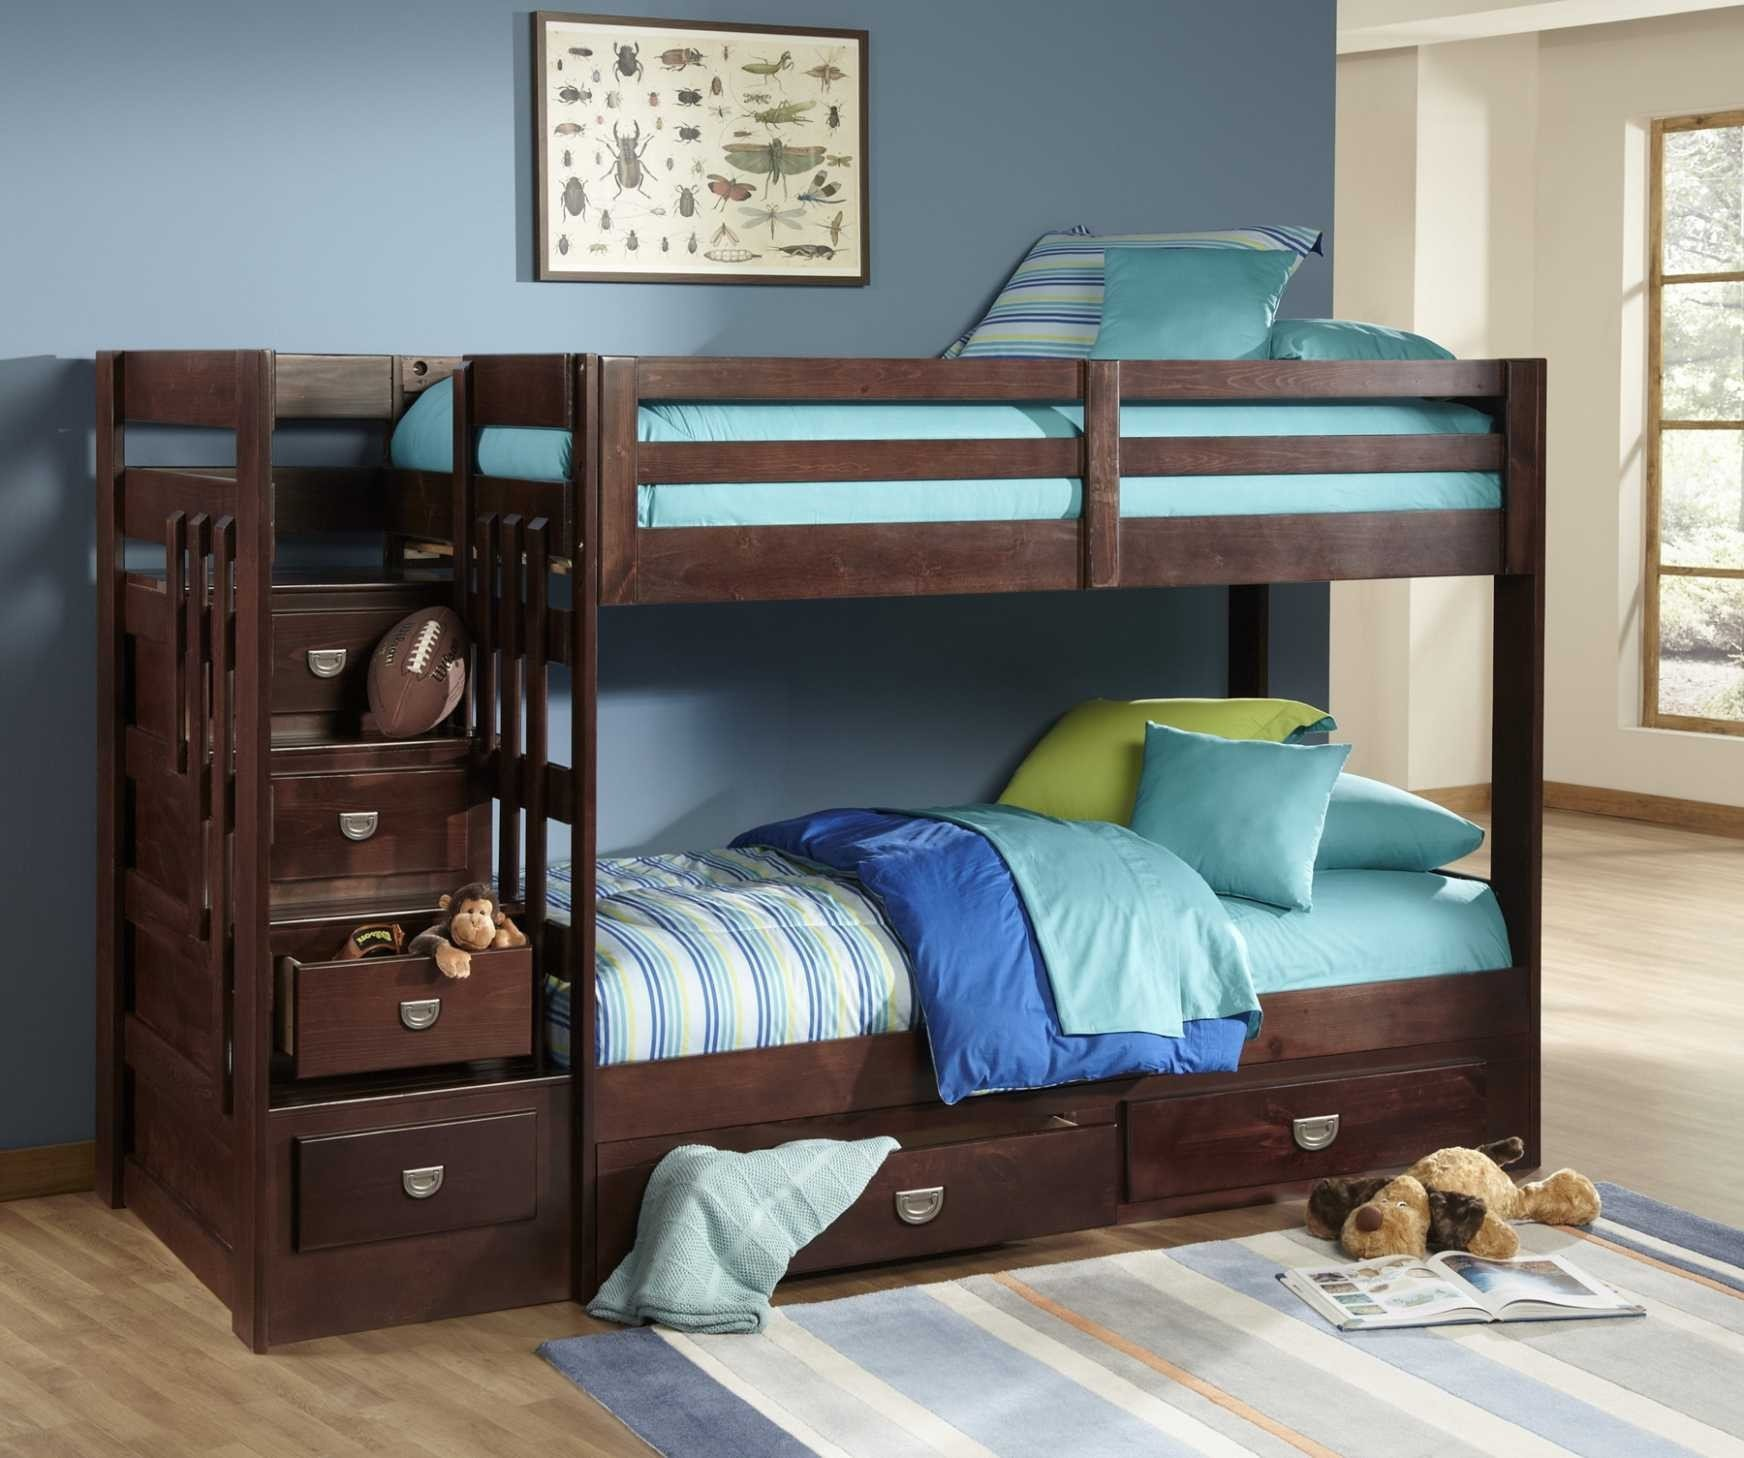 Rooms to Go Kids Bedroom Set Best Of Bedroom Charming Roomstogokids with Beautiful Decor for